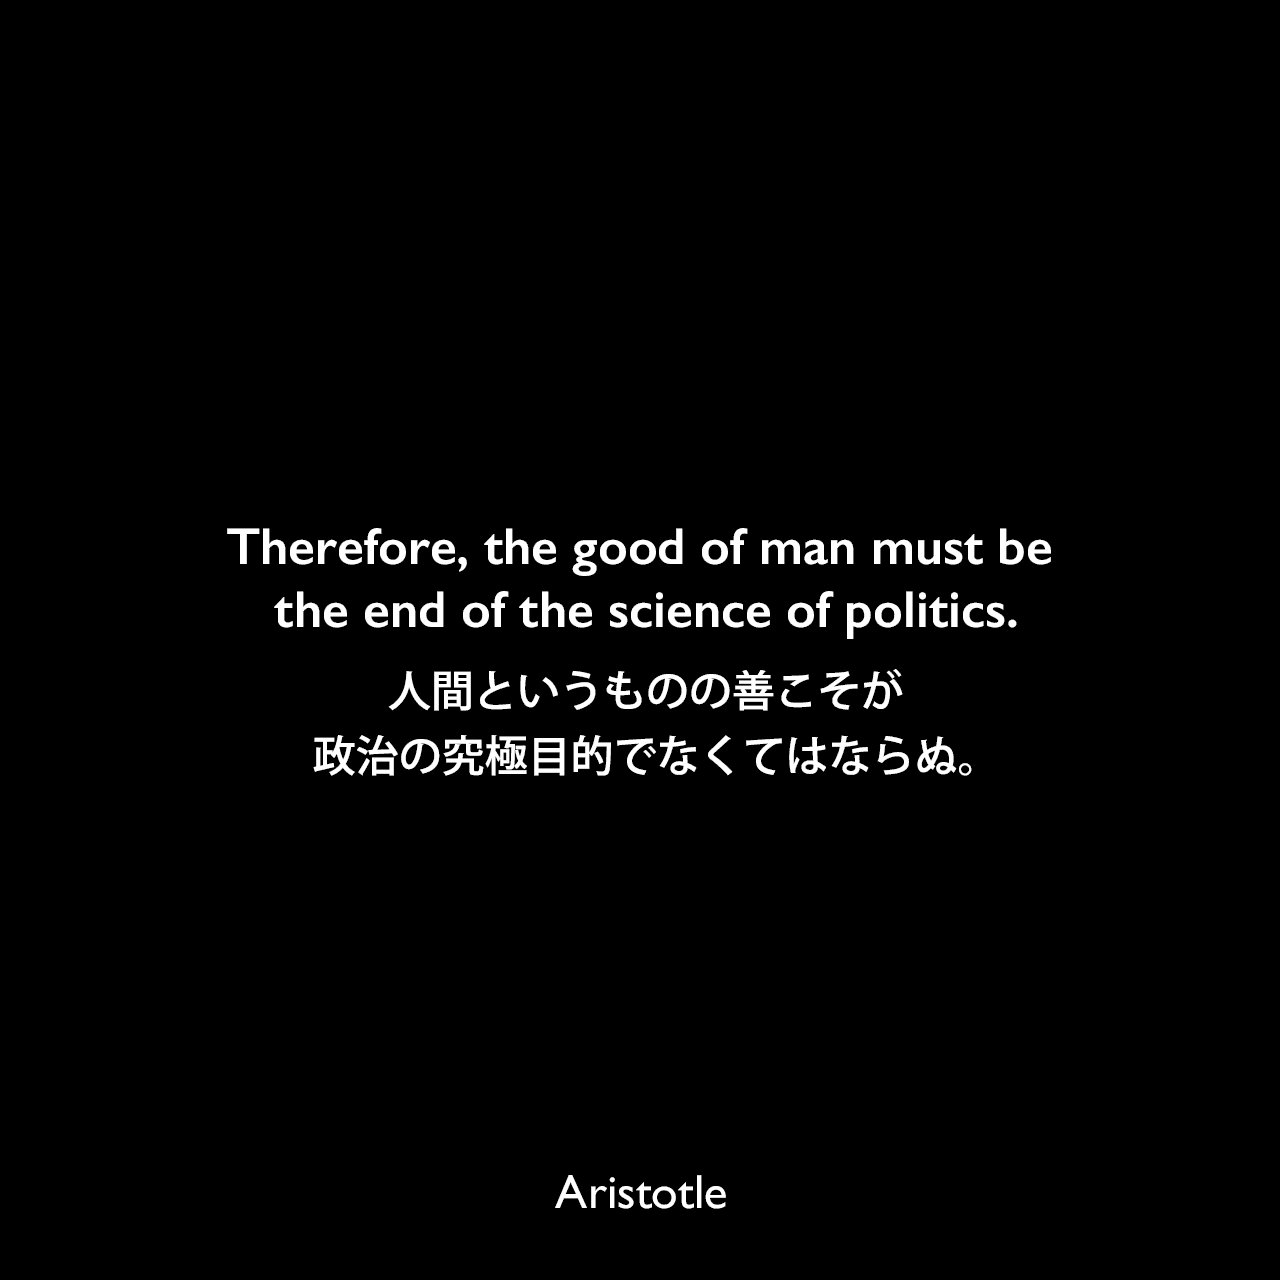 Therefore, the good of man must be the end of the science of politics.人間というものの善こそが政治の究極目的でなくてはならぬ。Aristotle